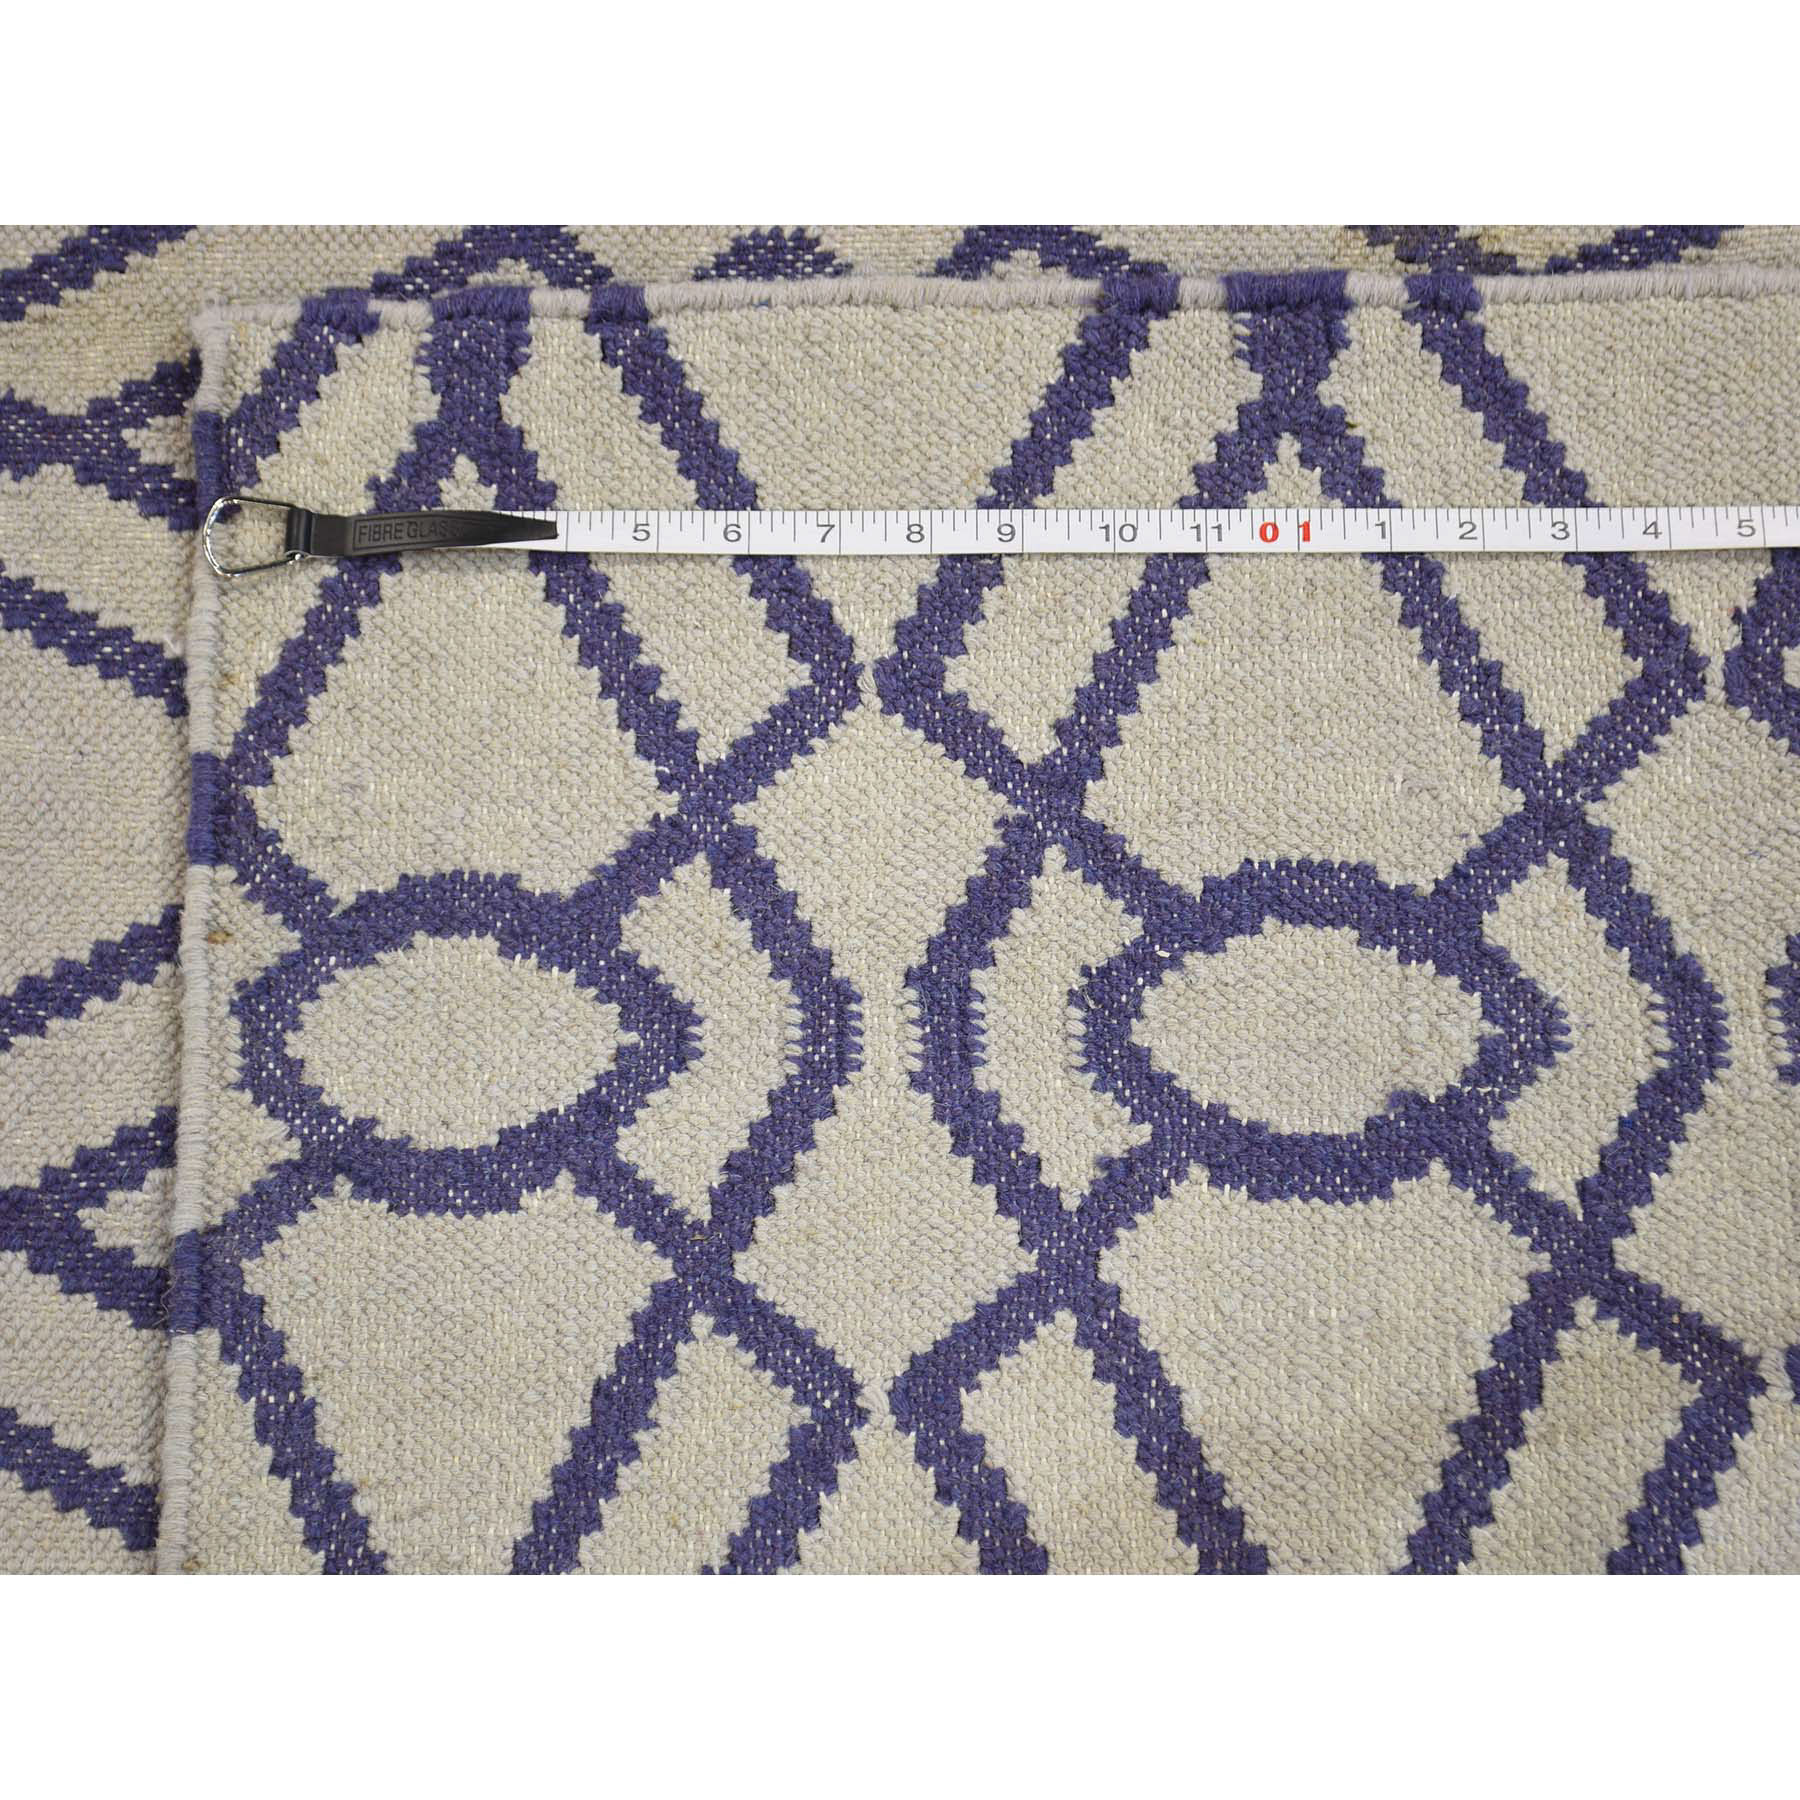 2-8--x5-10-- Flat Weave Reversible Hand Woven Runner Durie Kilim Rug